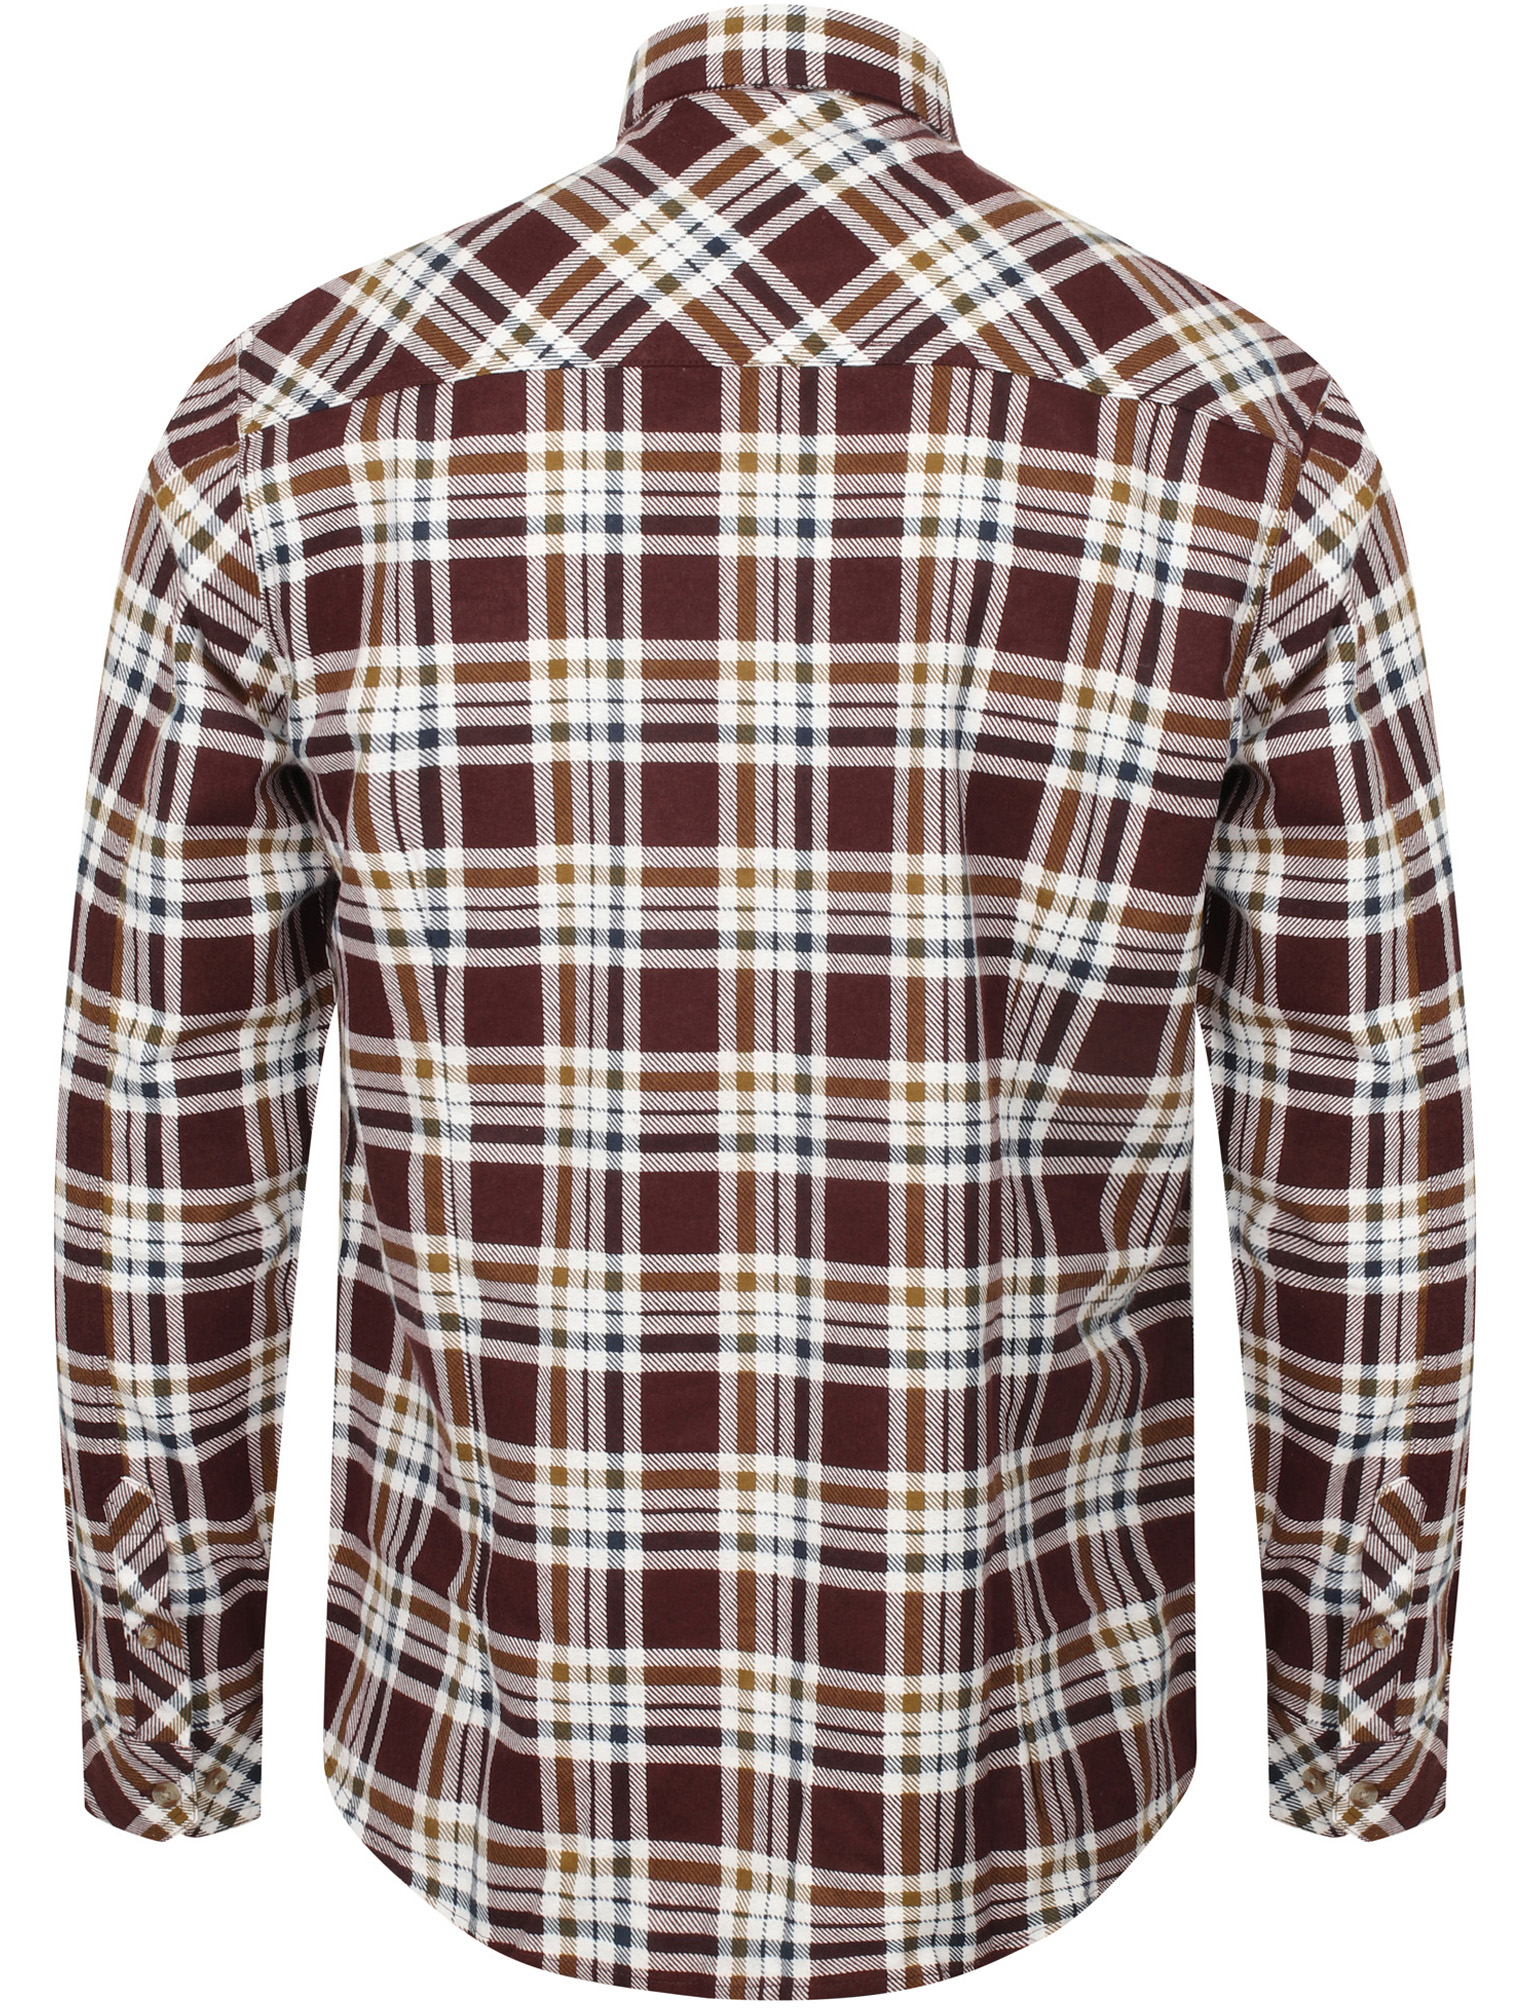 New-Mens-Tokyo-Laundry-Cotton-Long-Sleeve-Checked-Flannel-Shirt-Size-S-XXL thumbnail 12